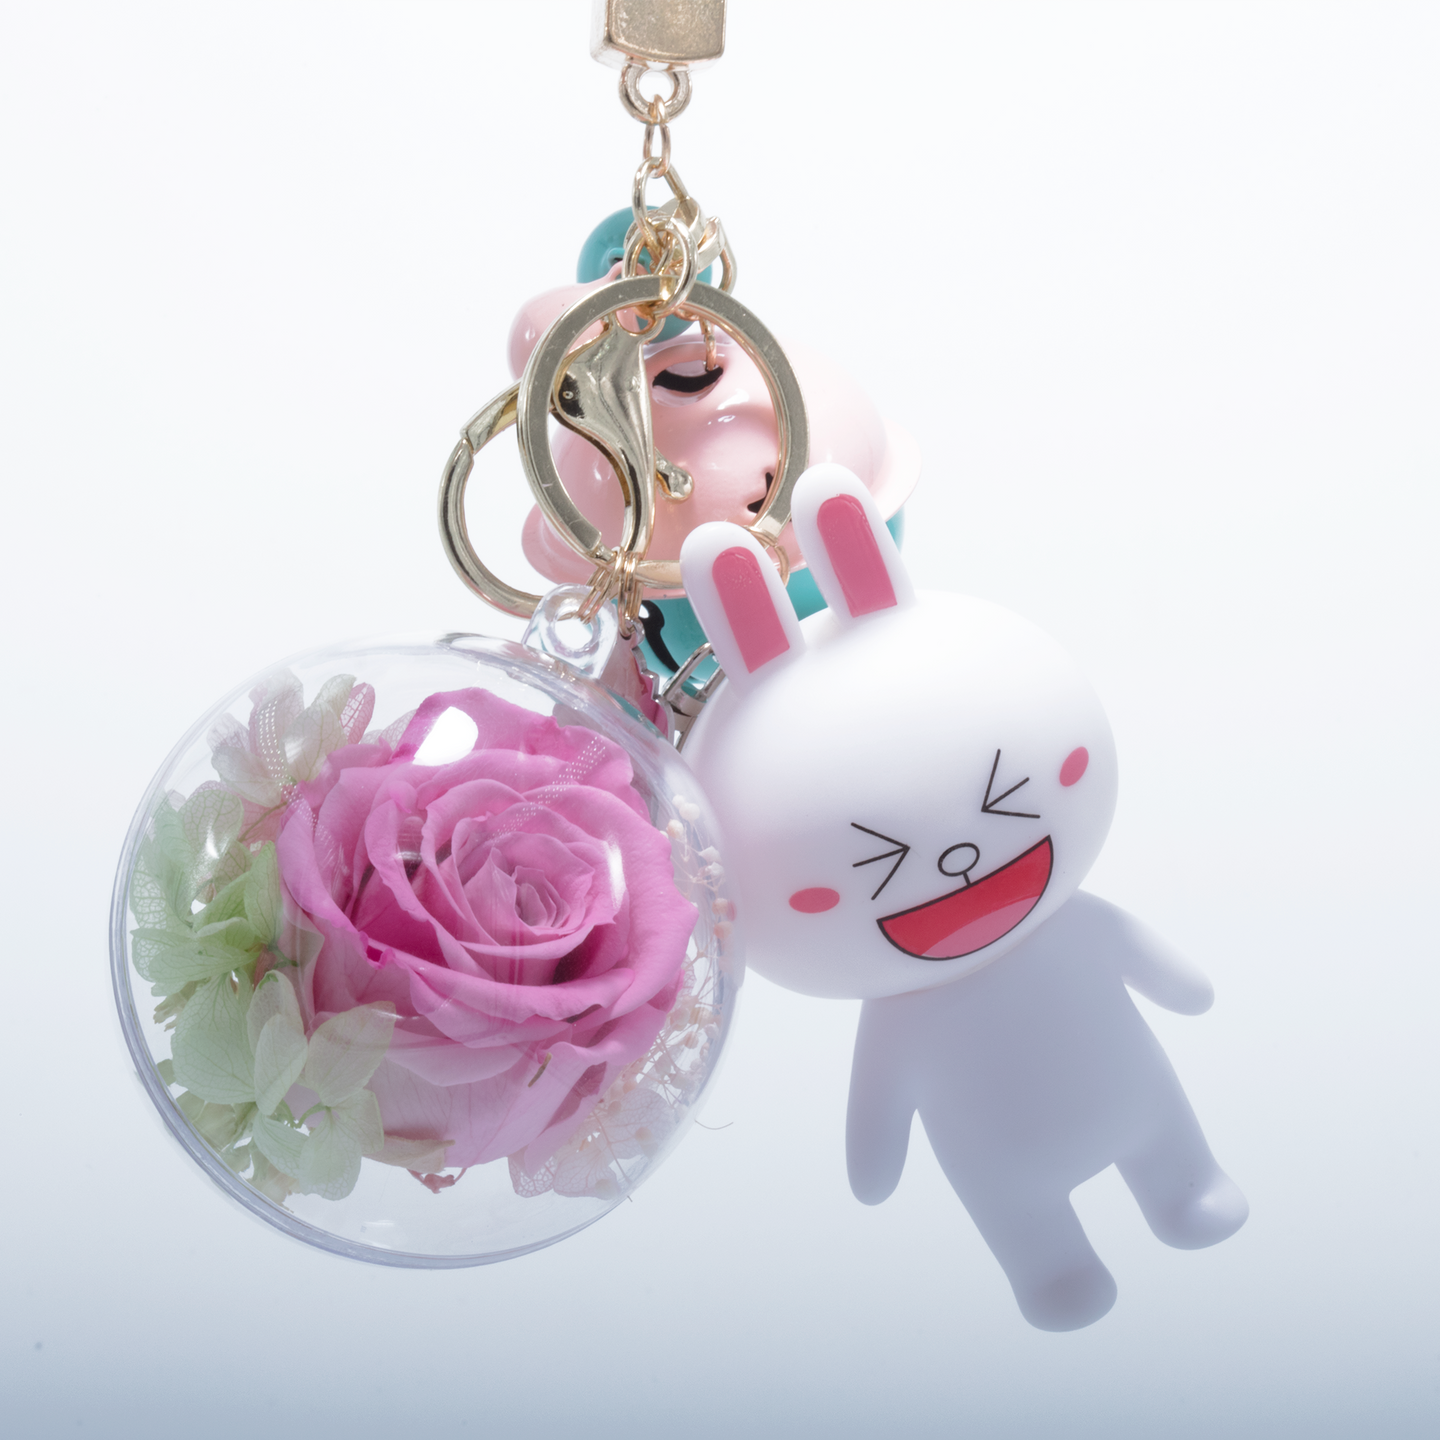 Pink Preserved Rose | White Rabbit Keychain - The Only Roses